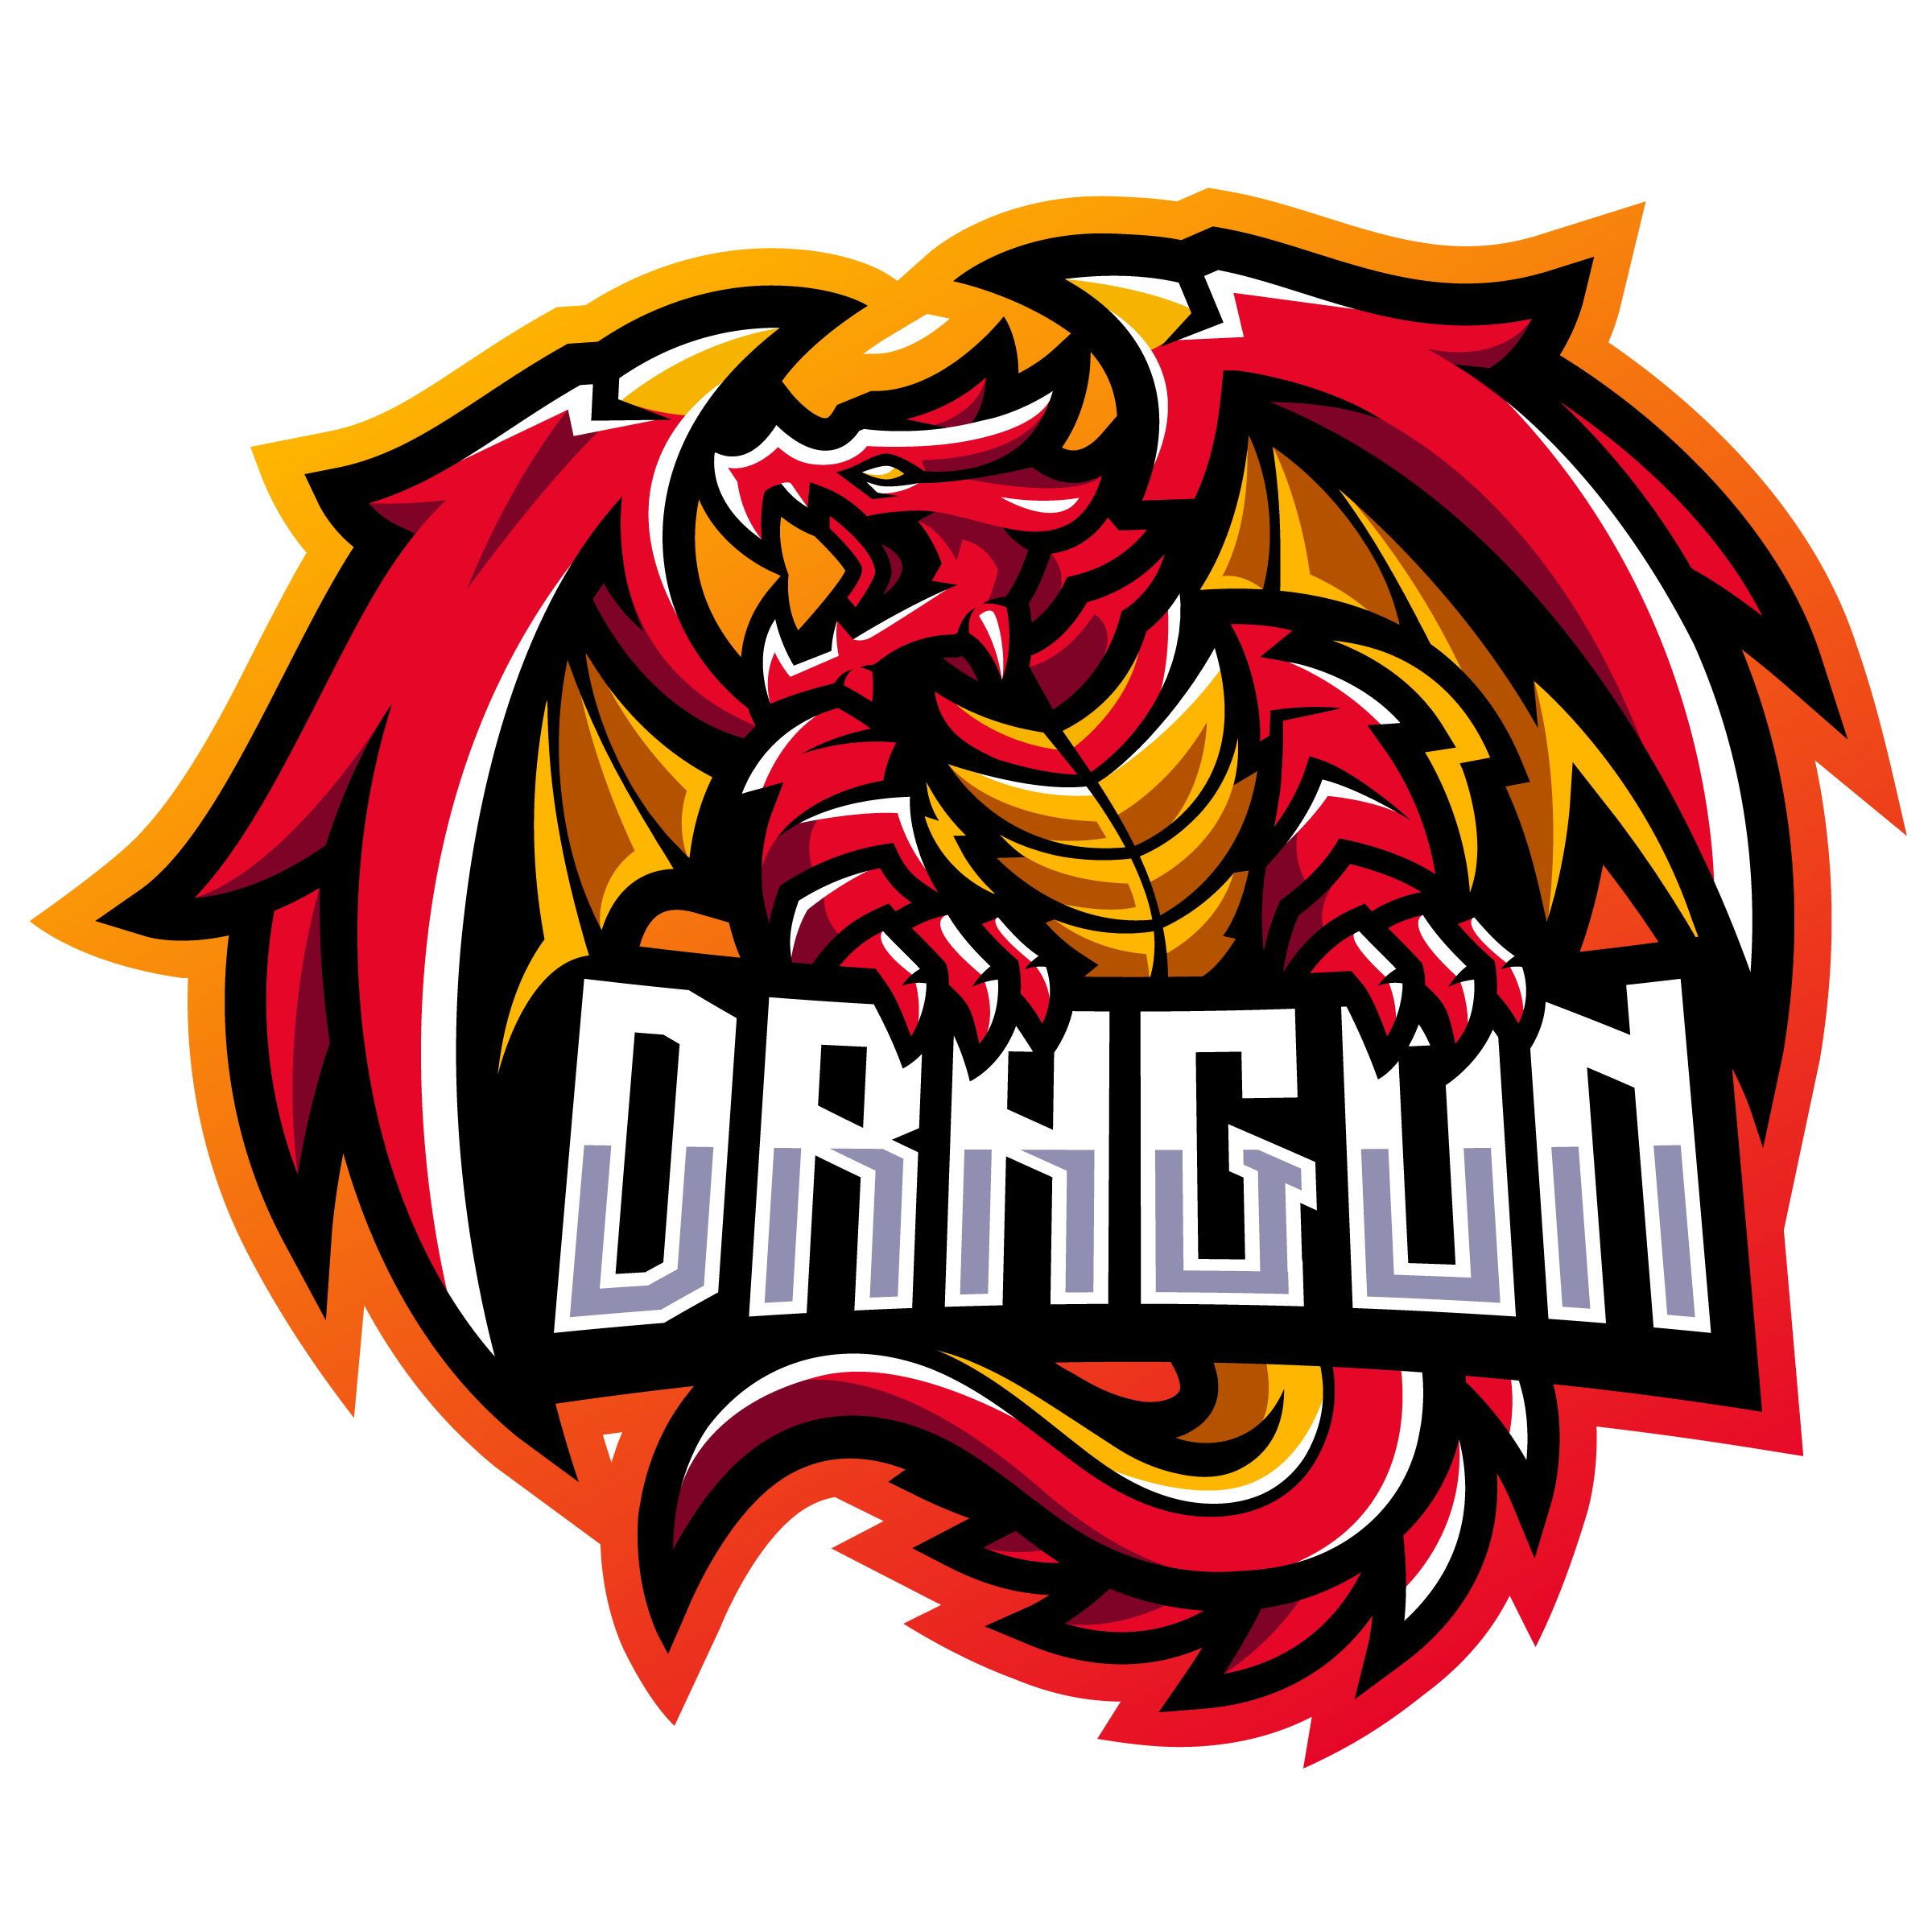 Dragon-Mascot-Logo-PNG-Transparent